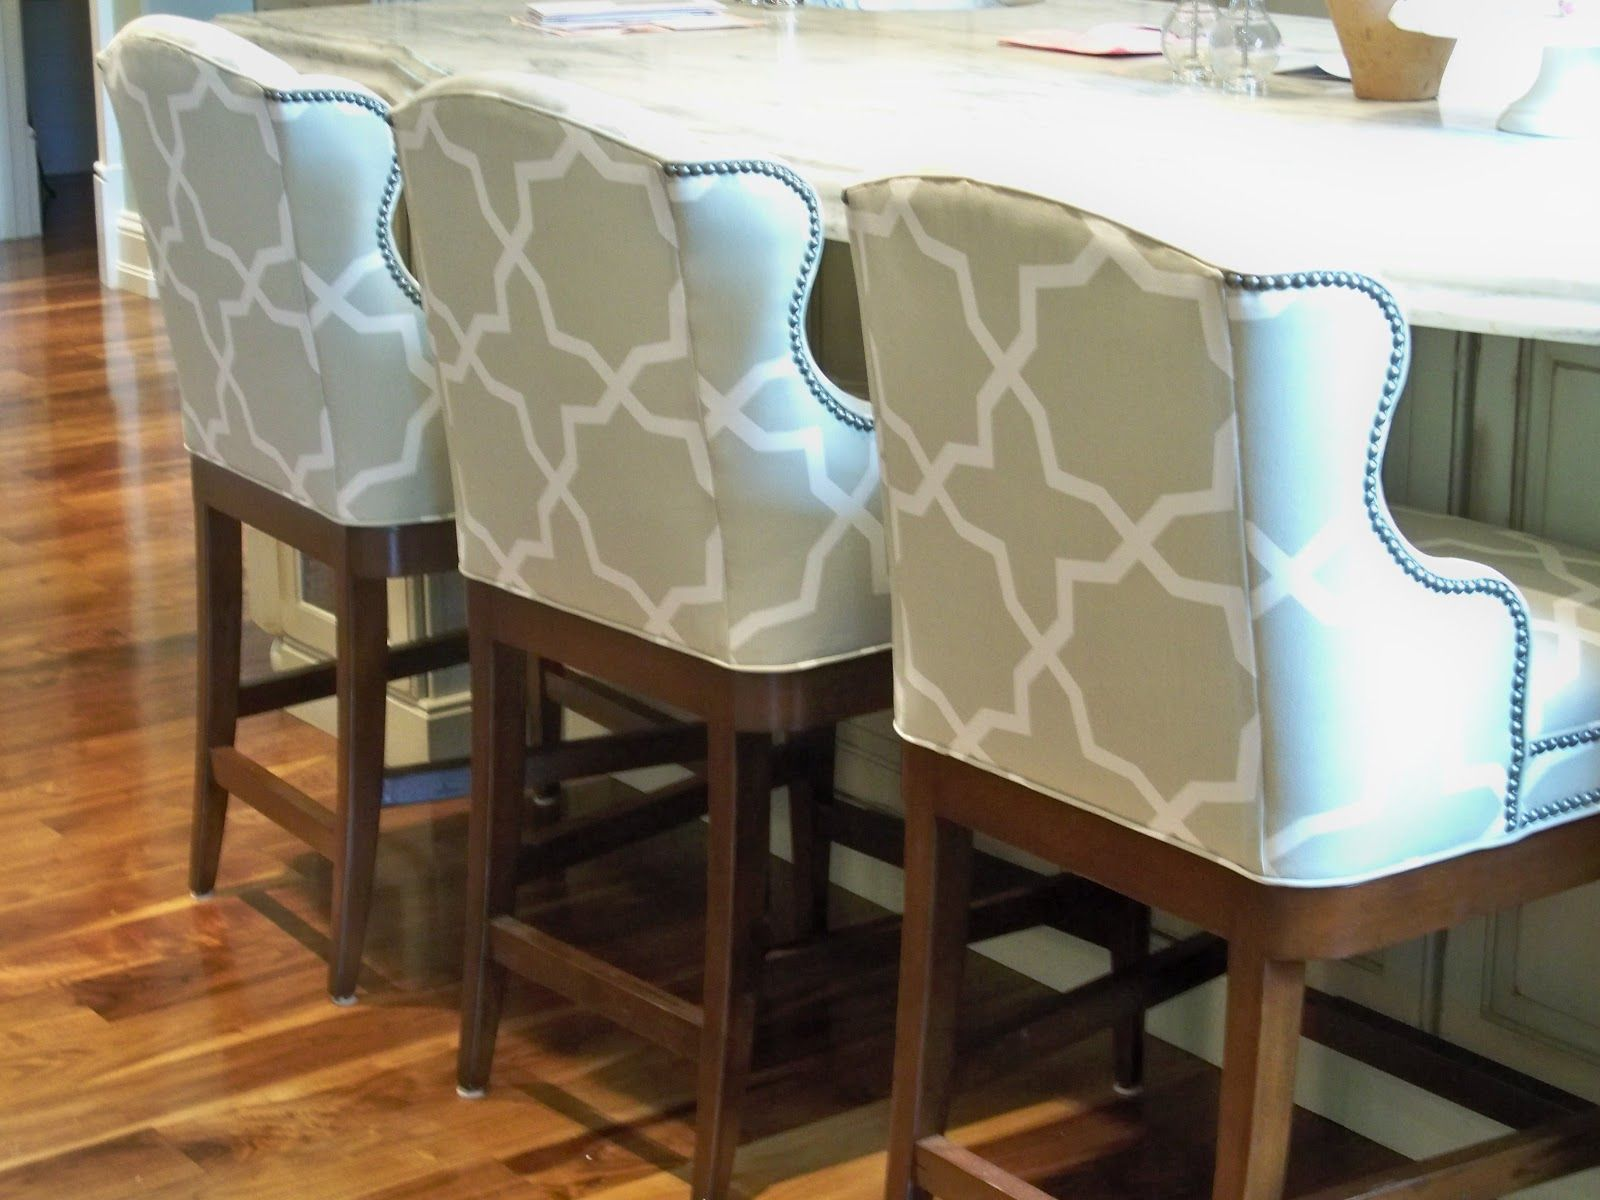 counter height stools counter height kitchen chairs Victoria Dreste Designs A New Home Part Two Vanguard counter stools with Kravet outdoor fabric